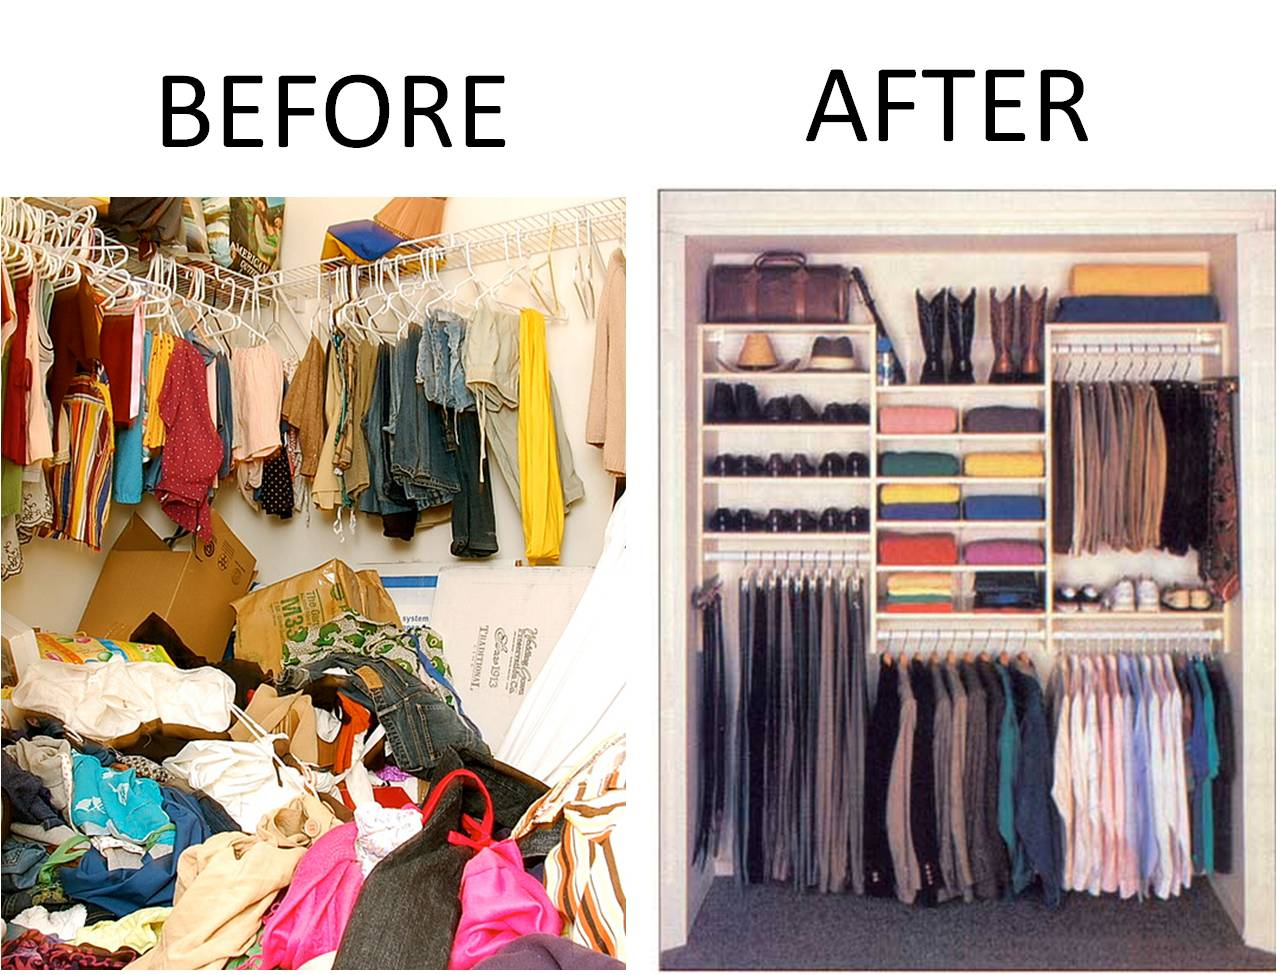 Closet-before-and-after.jpg